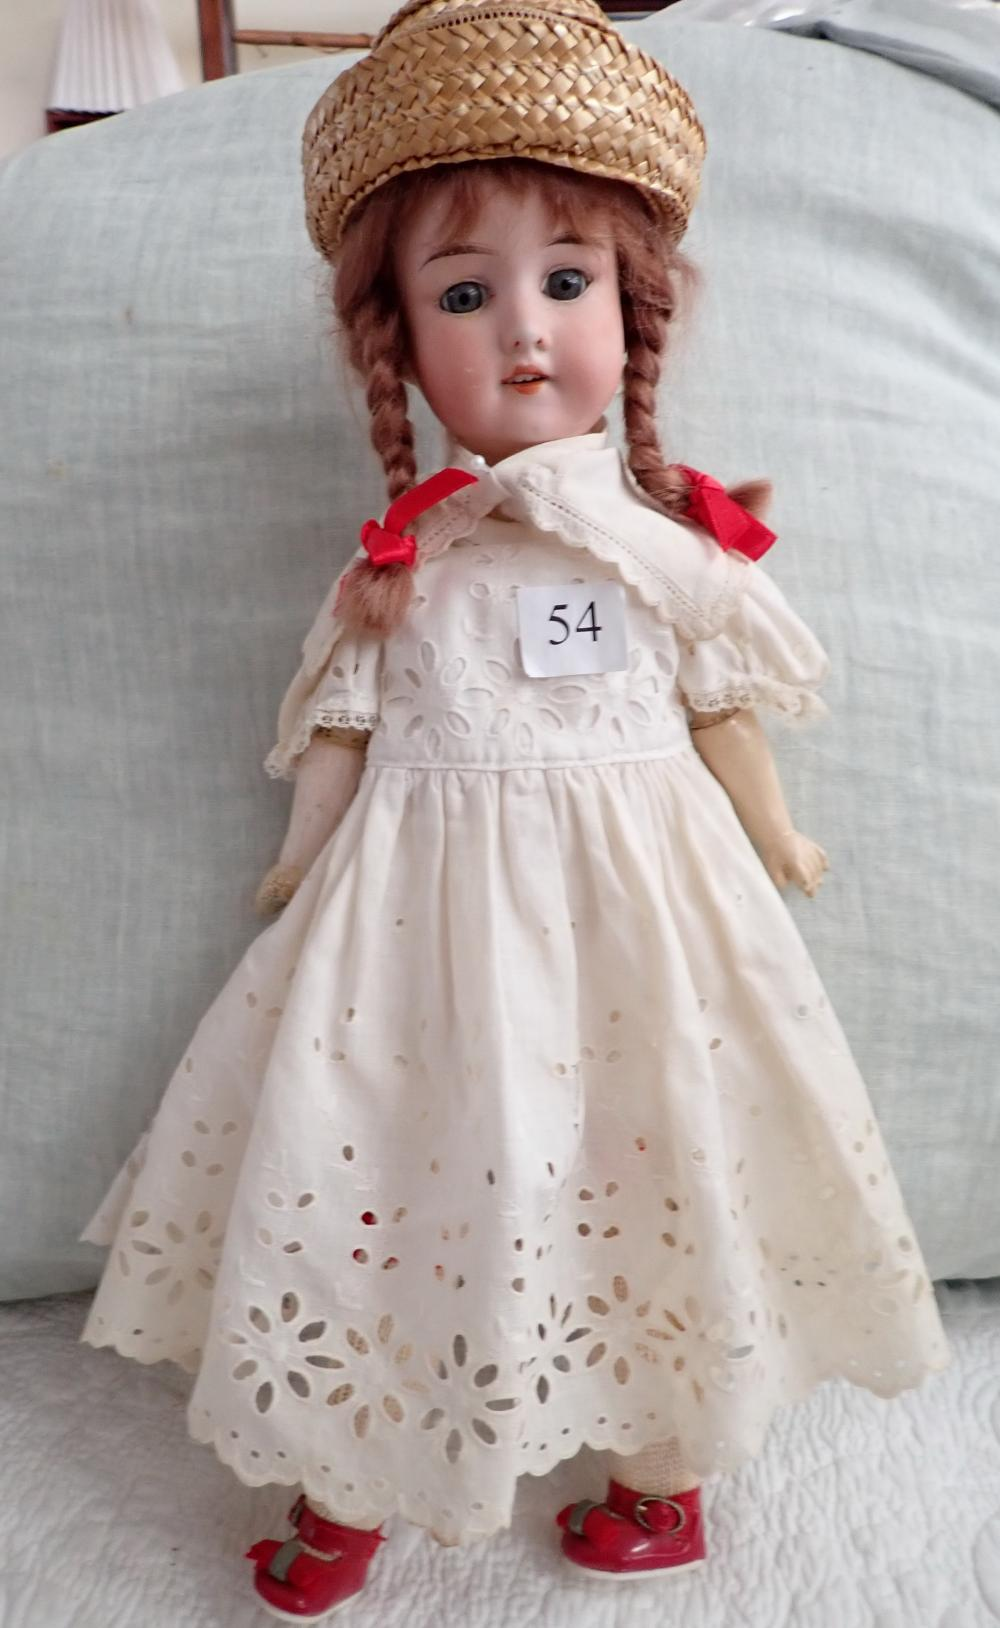 "PORCELAIN 17"" AM 390 DRGM 246/ AO 1/2 M DOLL, FAULTS WITH HANDS, JOINTED ARMS & LEGS, NO. 65 MARKED ON COMPOSITION BODY"